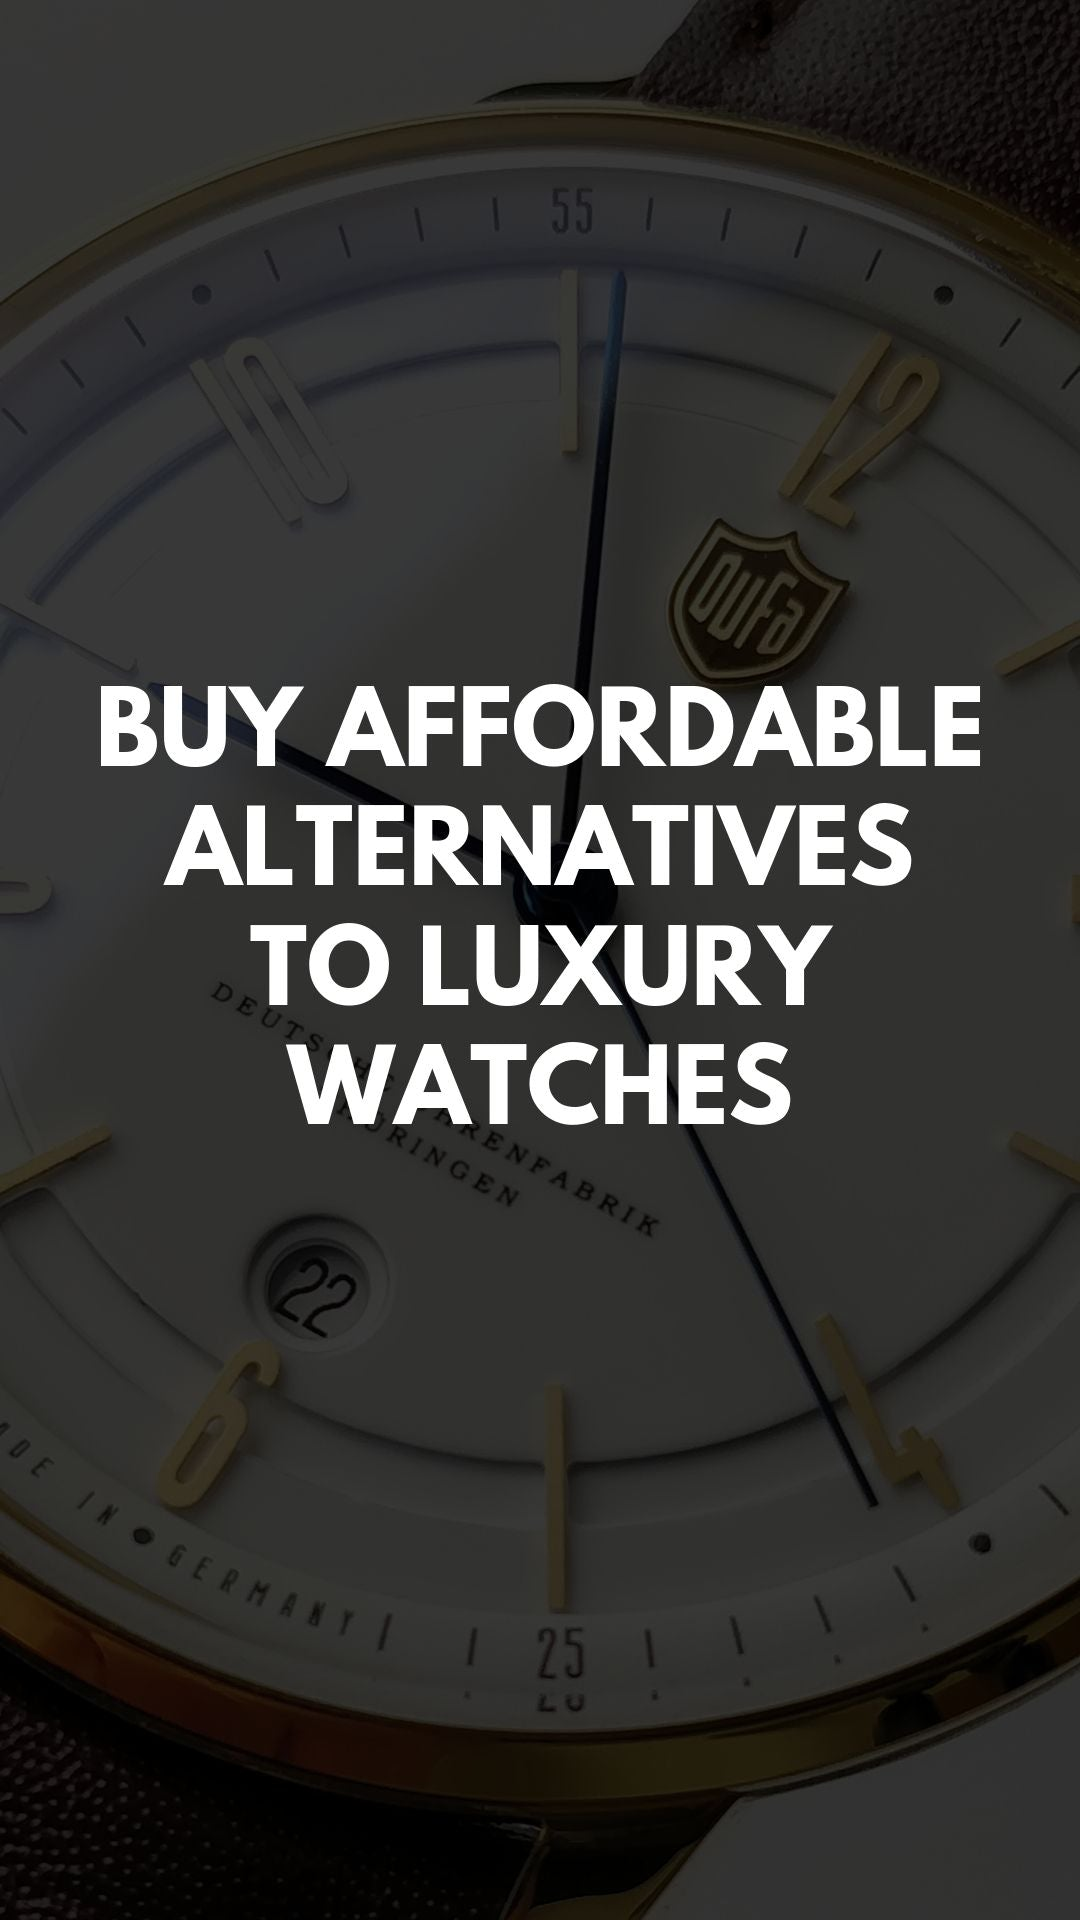 Buy Affordable Alternatives To Luxury Watches